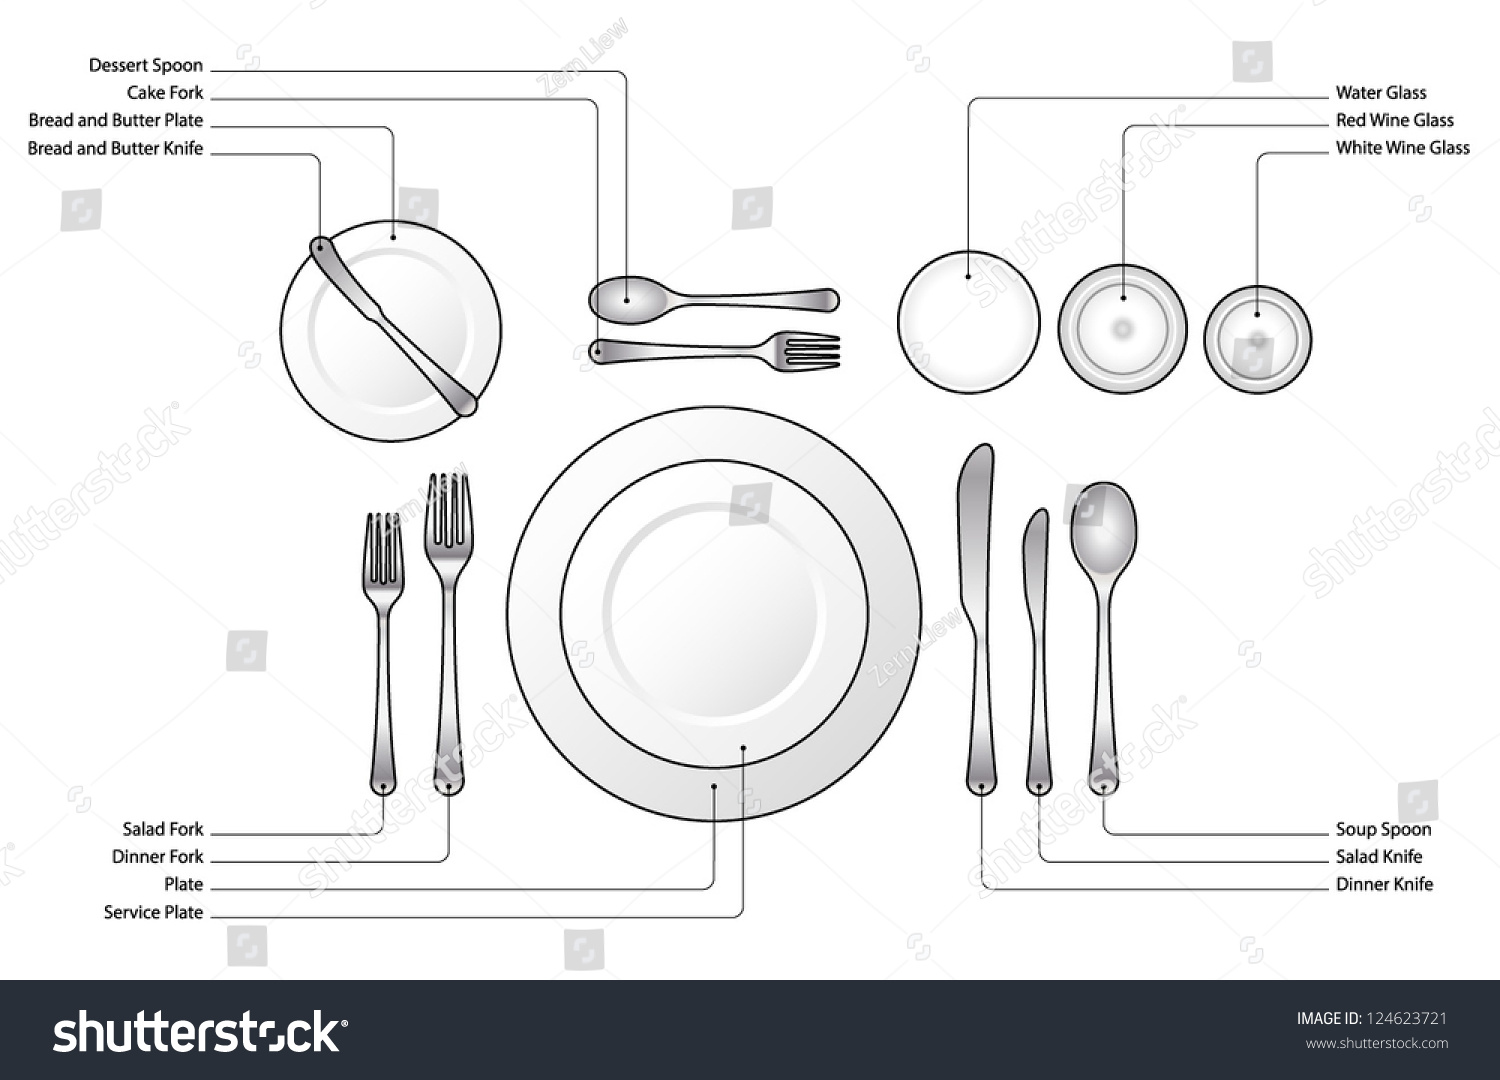 Diagram        Place       Setting    For A Formal Dinner With Soup And